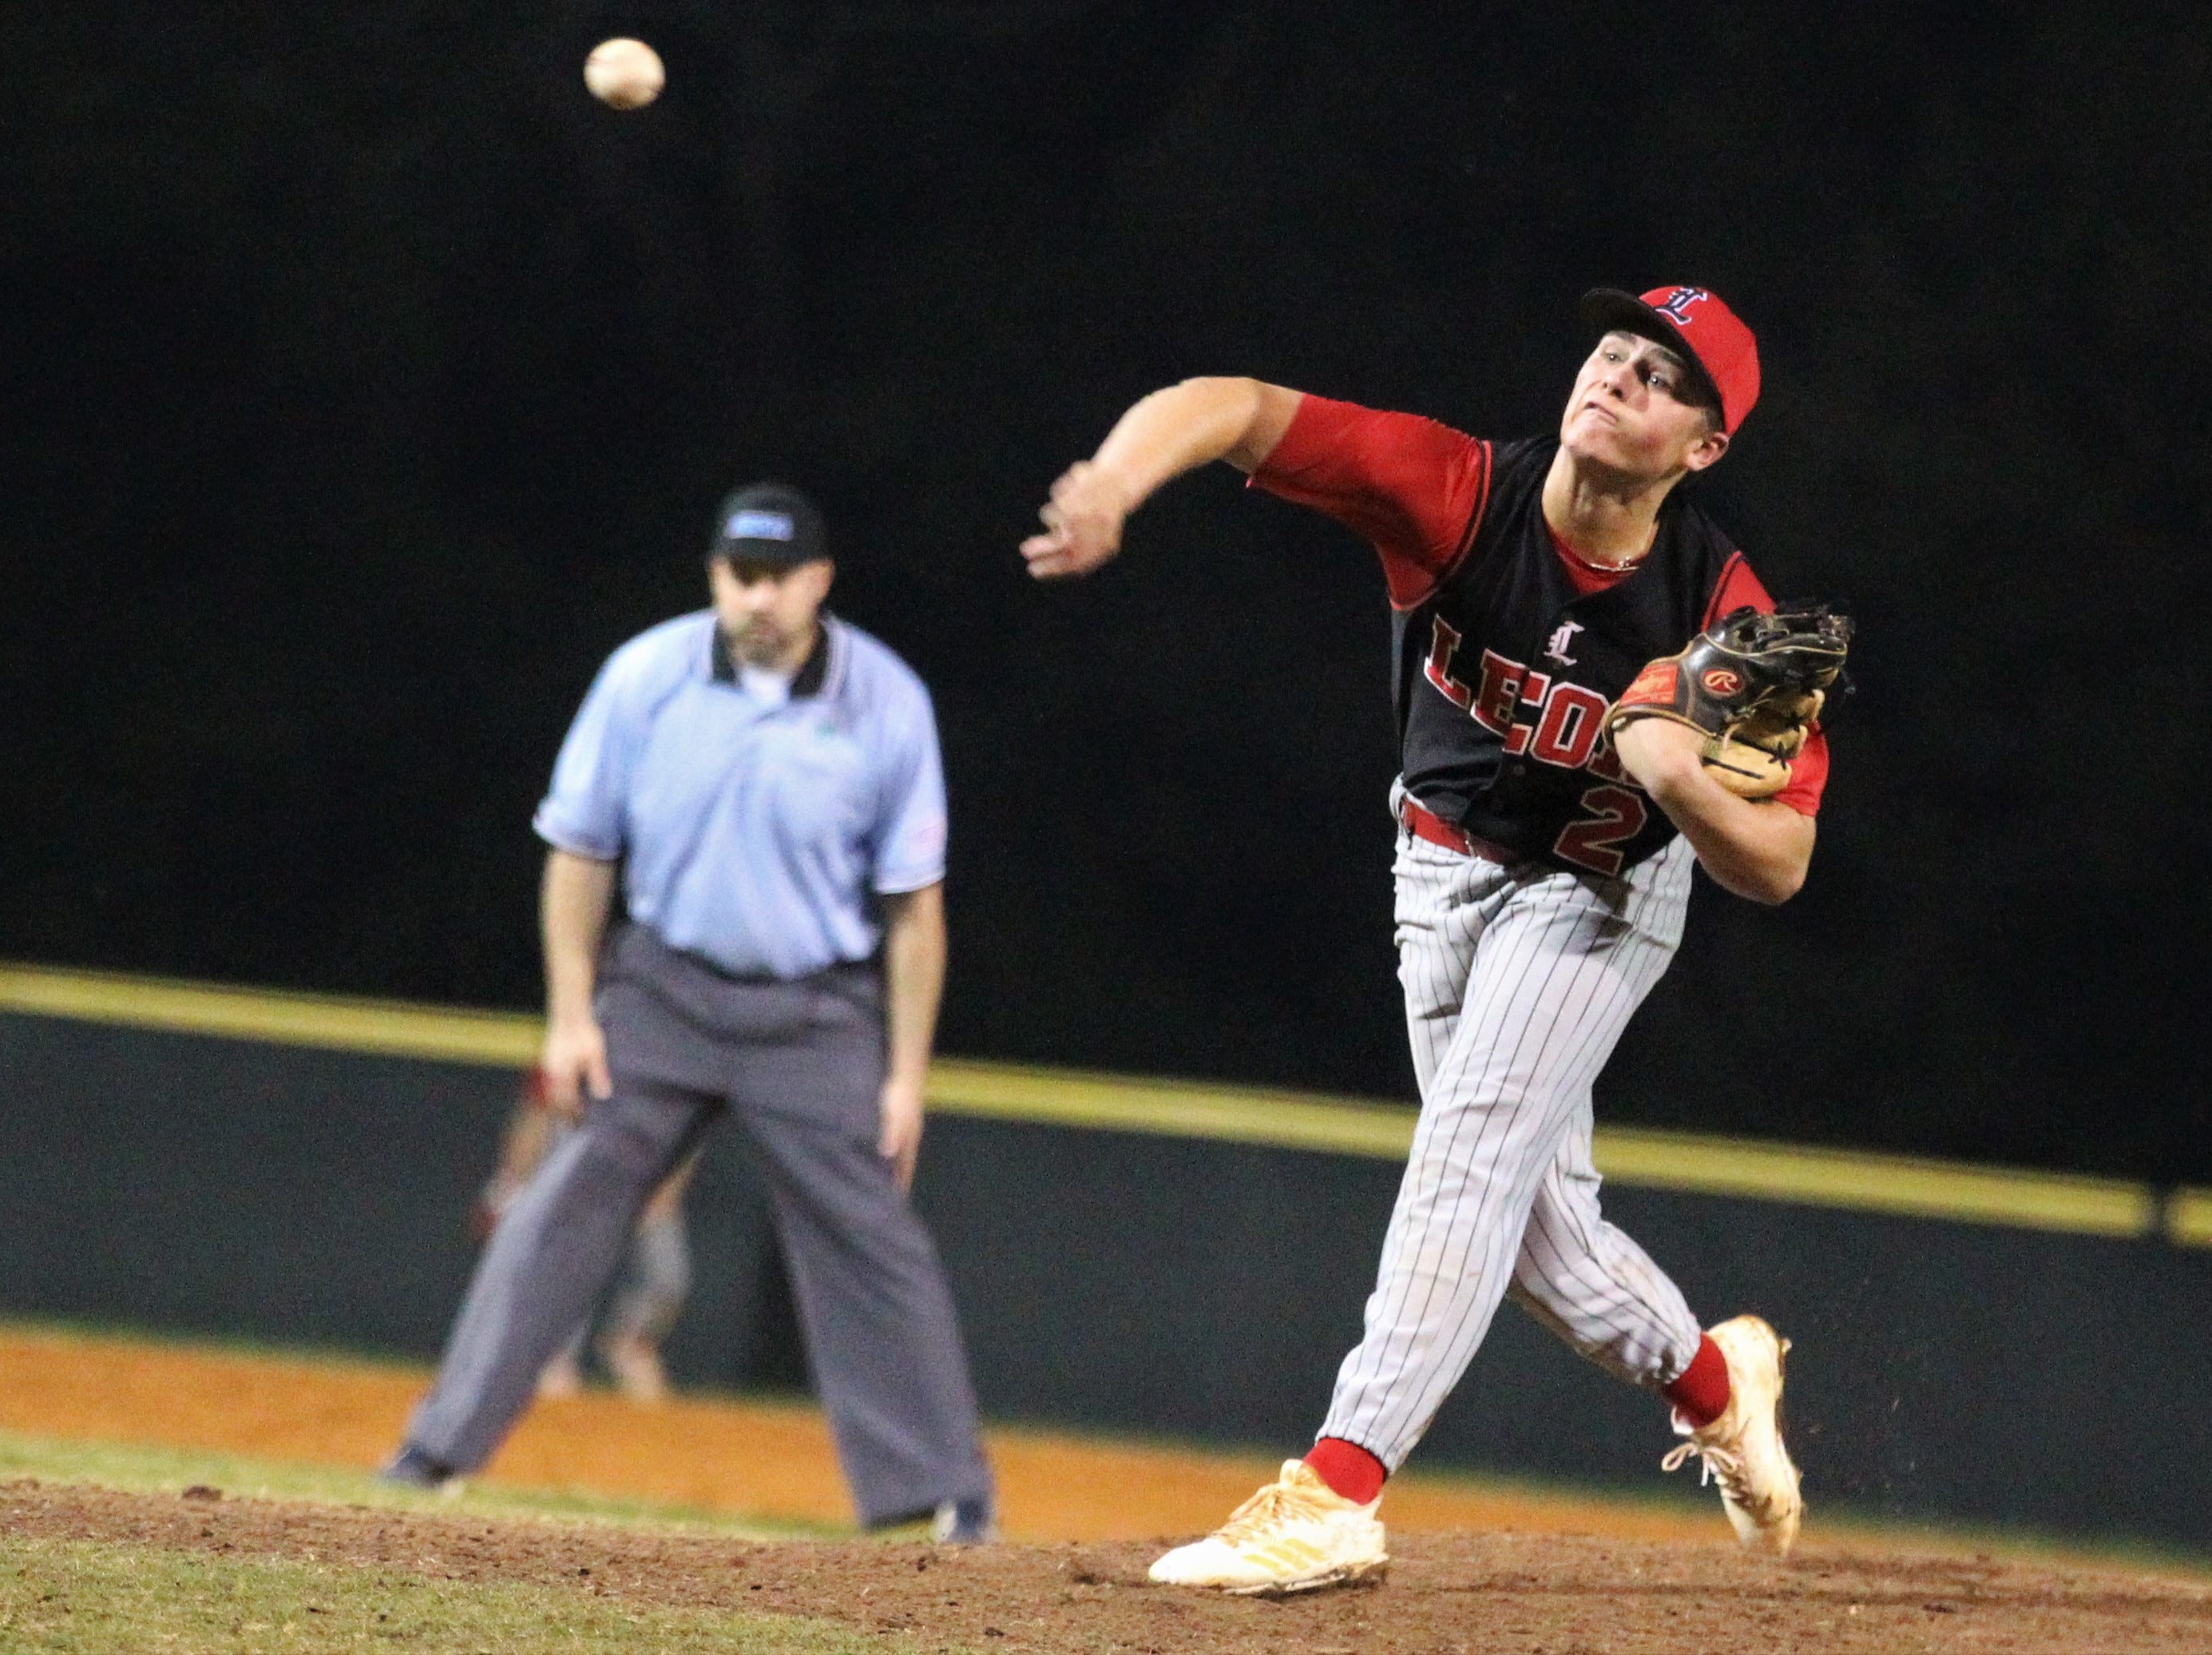 Leon junior Paxton Tomaini pitches in relief as Chiles won an 11-6 home game against Leon on Friday, April 5, 2019, to force a season split. The Lions won 3-0 earlier in the week.